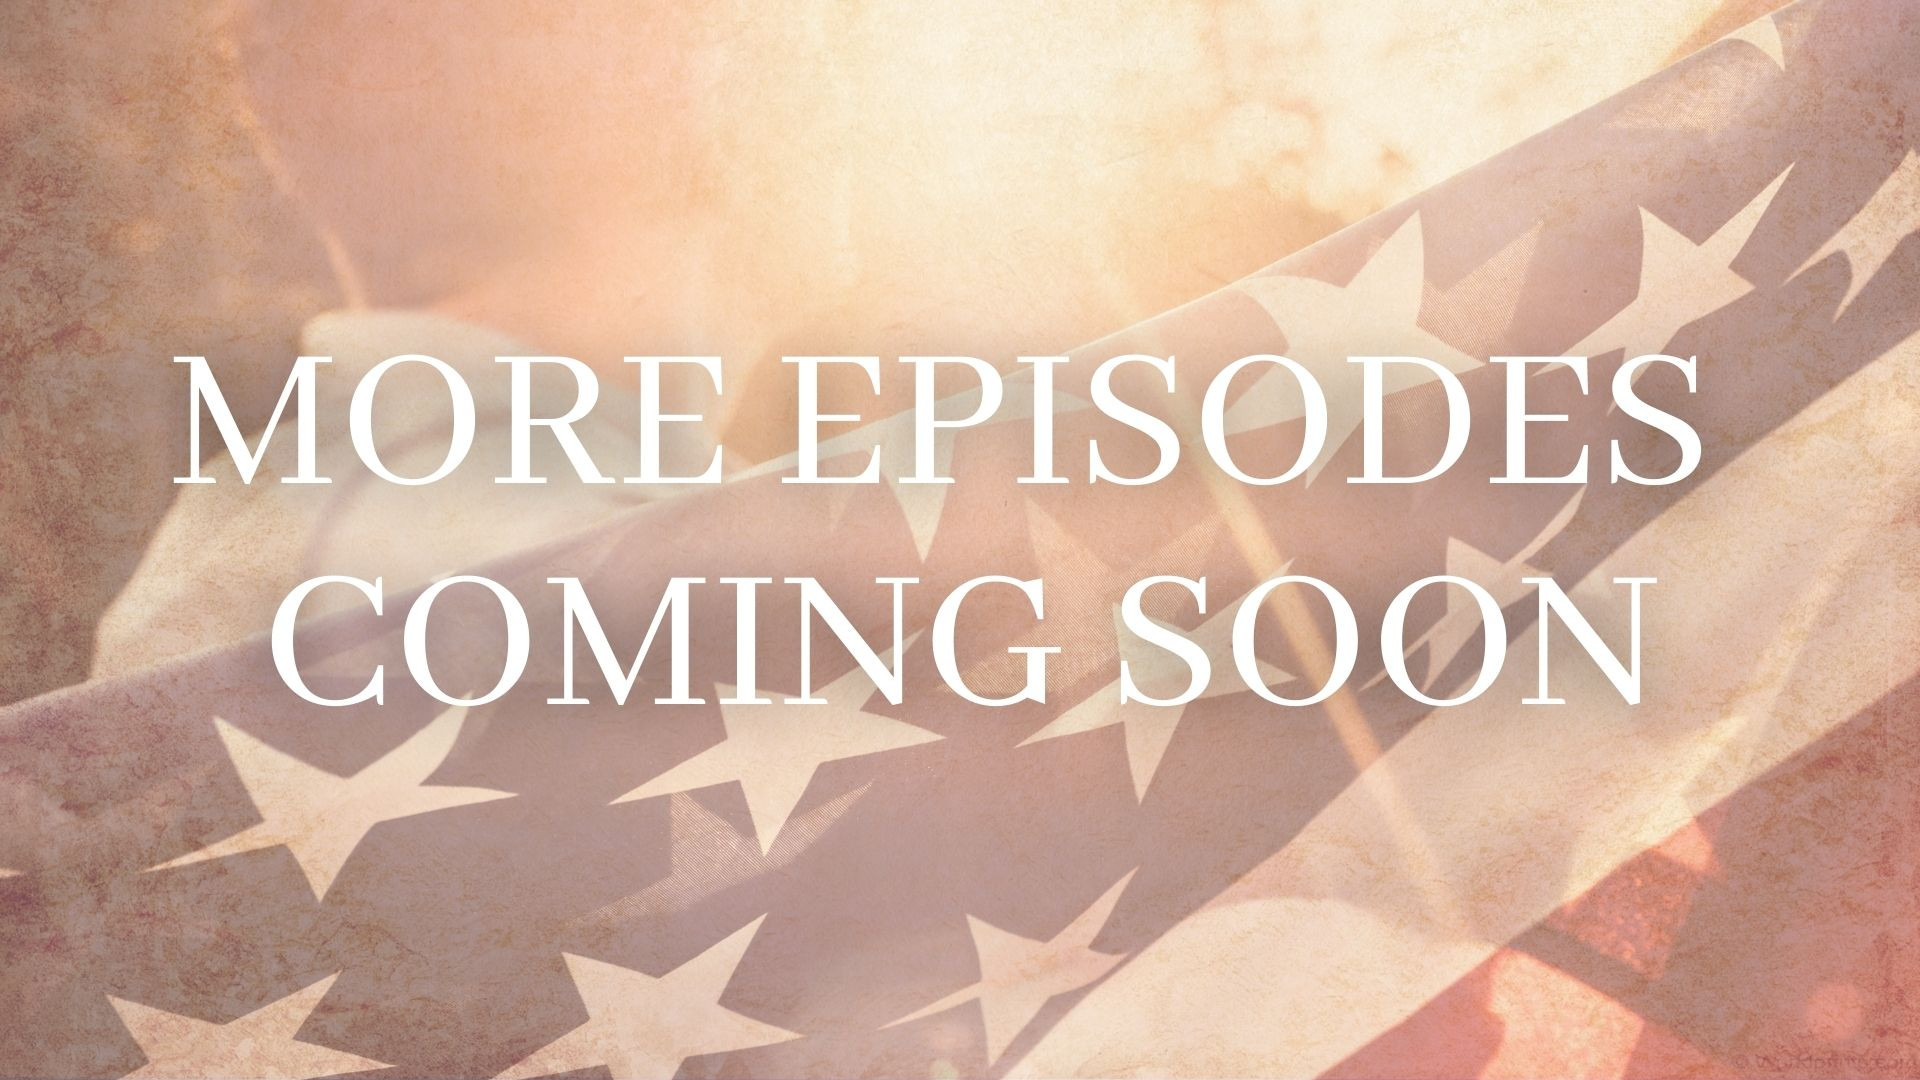 MORE EPISODES COMING SOON 2.jpg